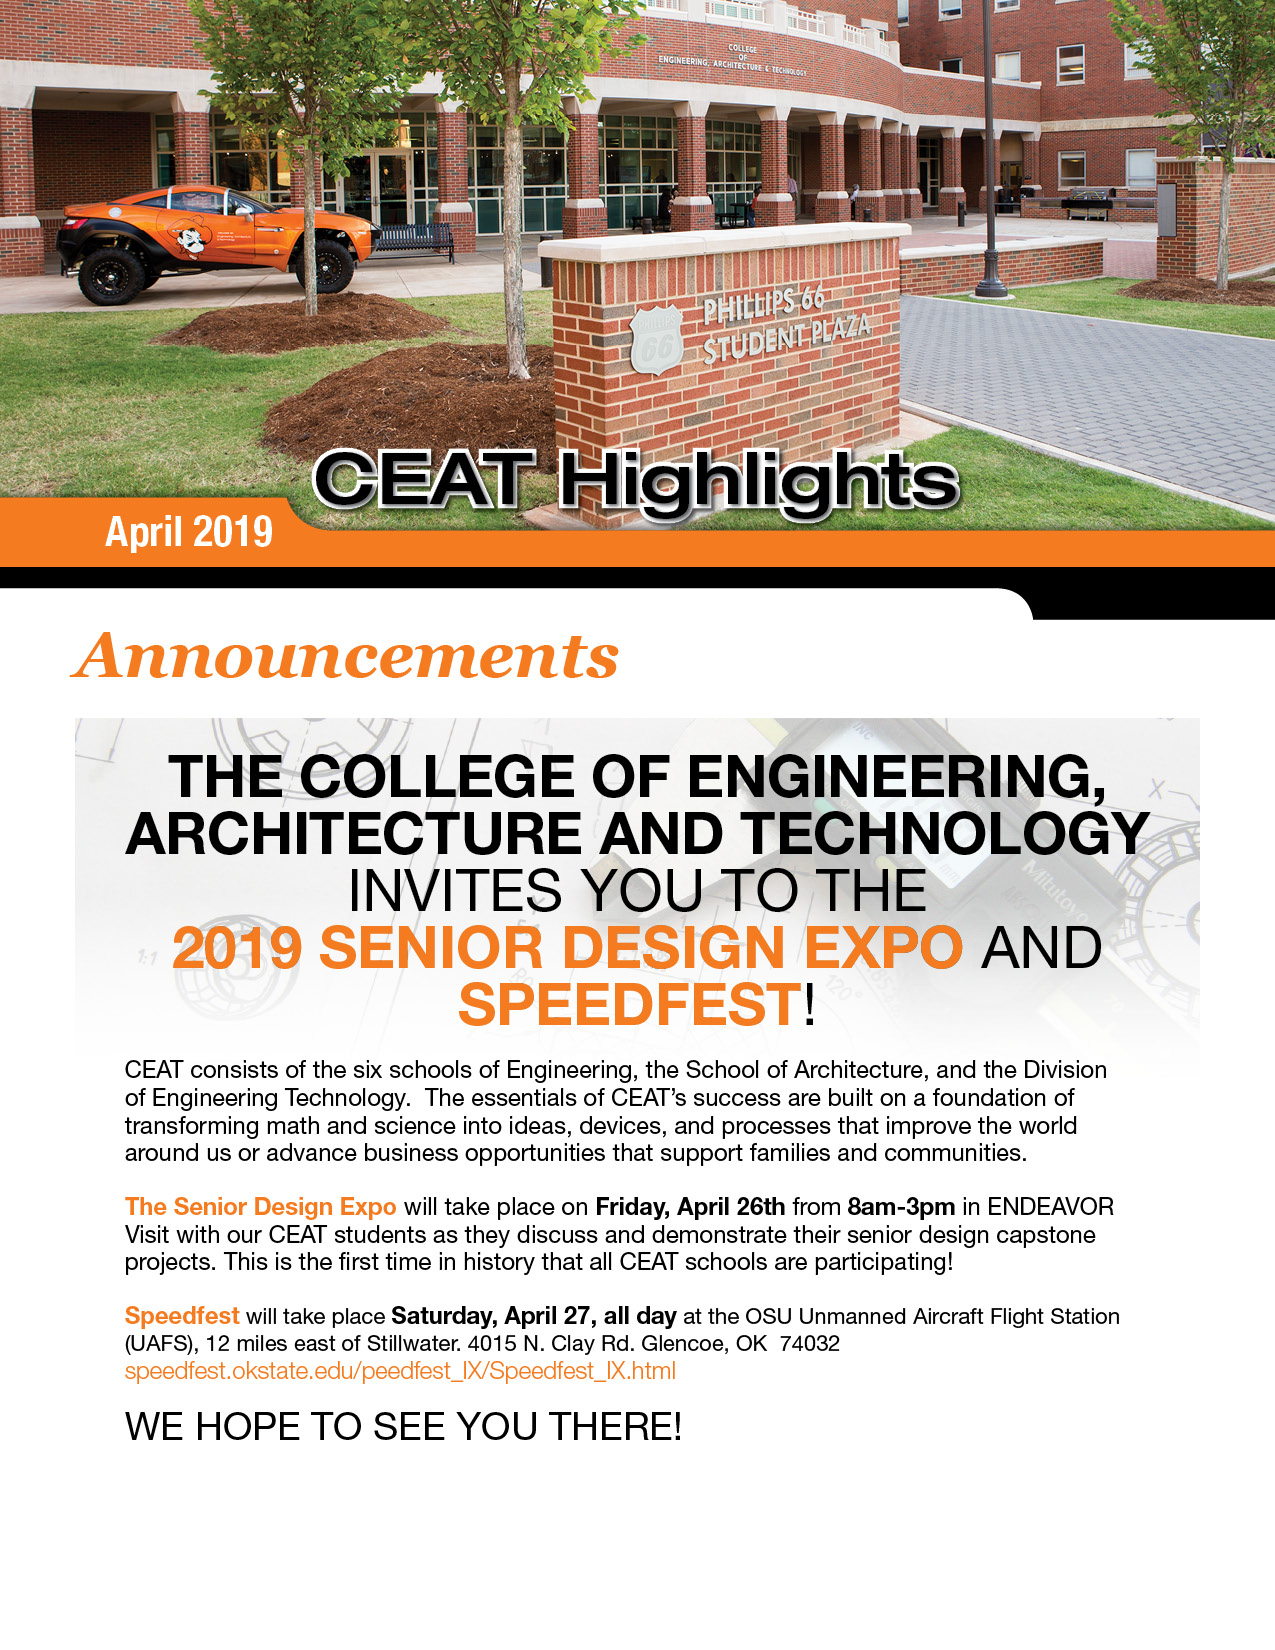 CEAT Newsletter | College of Engineering, Architecture and